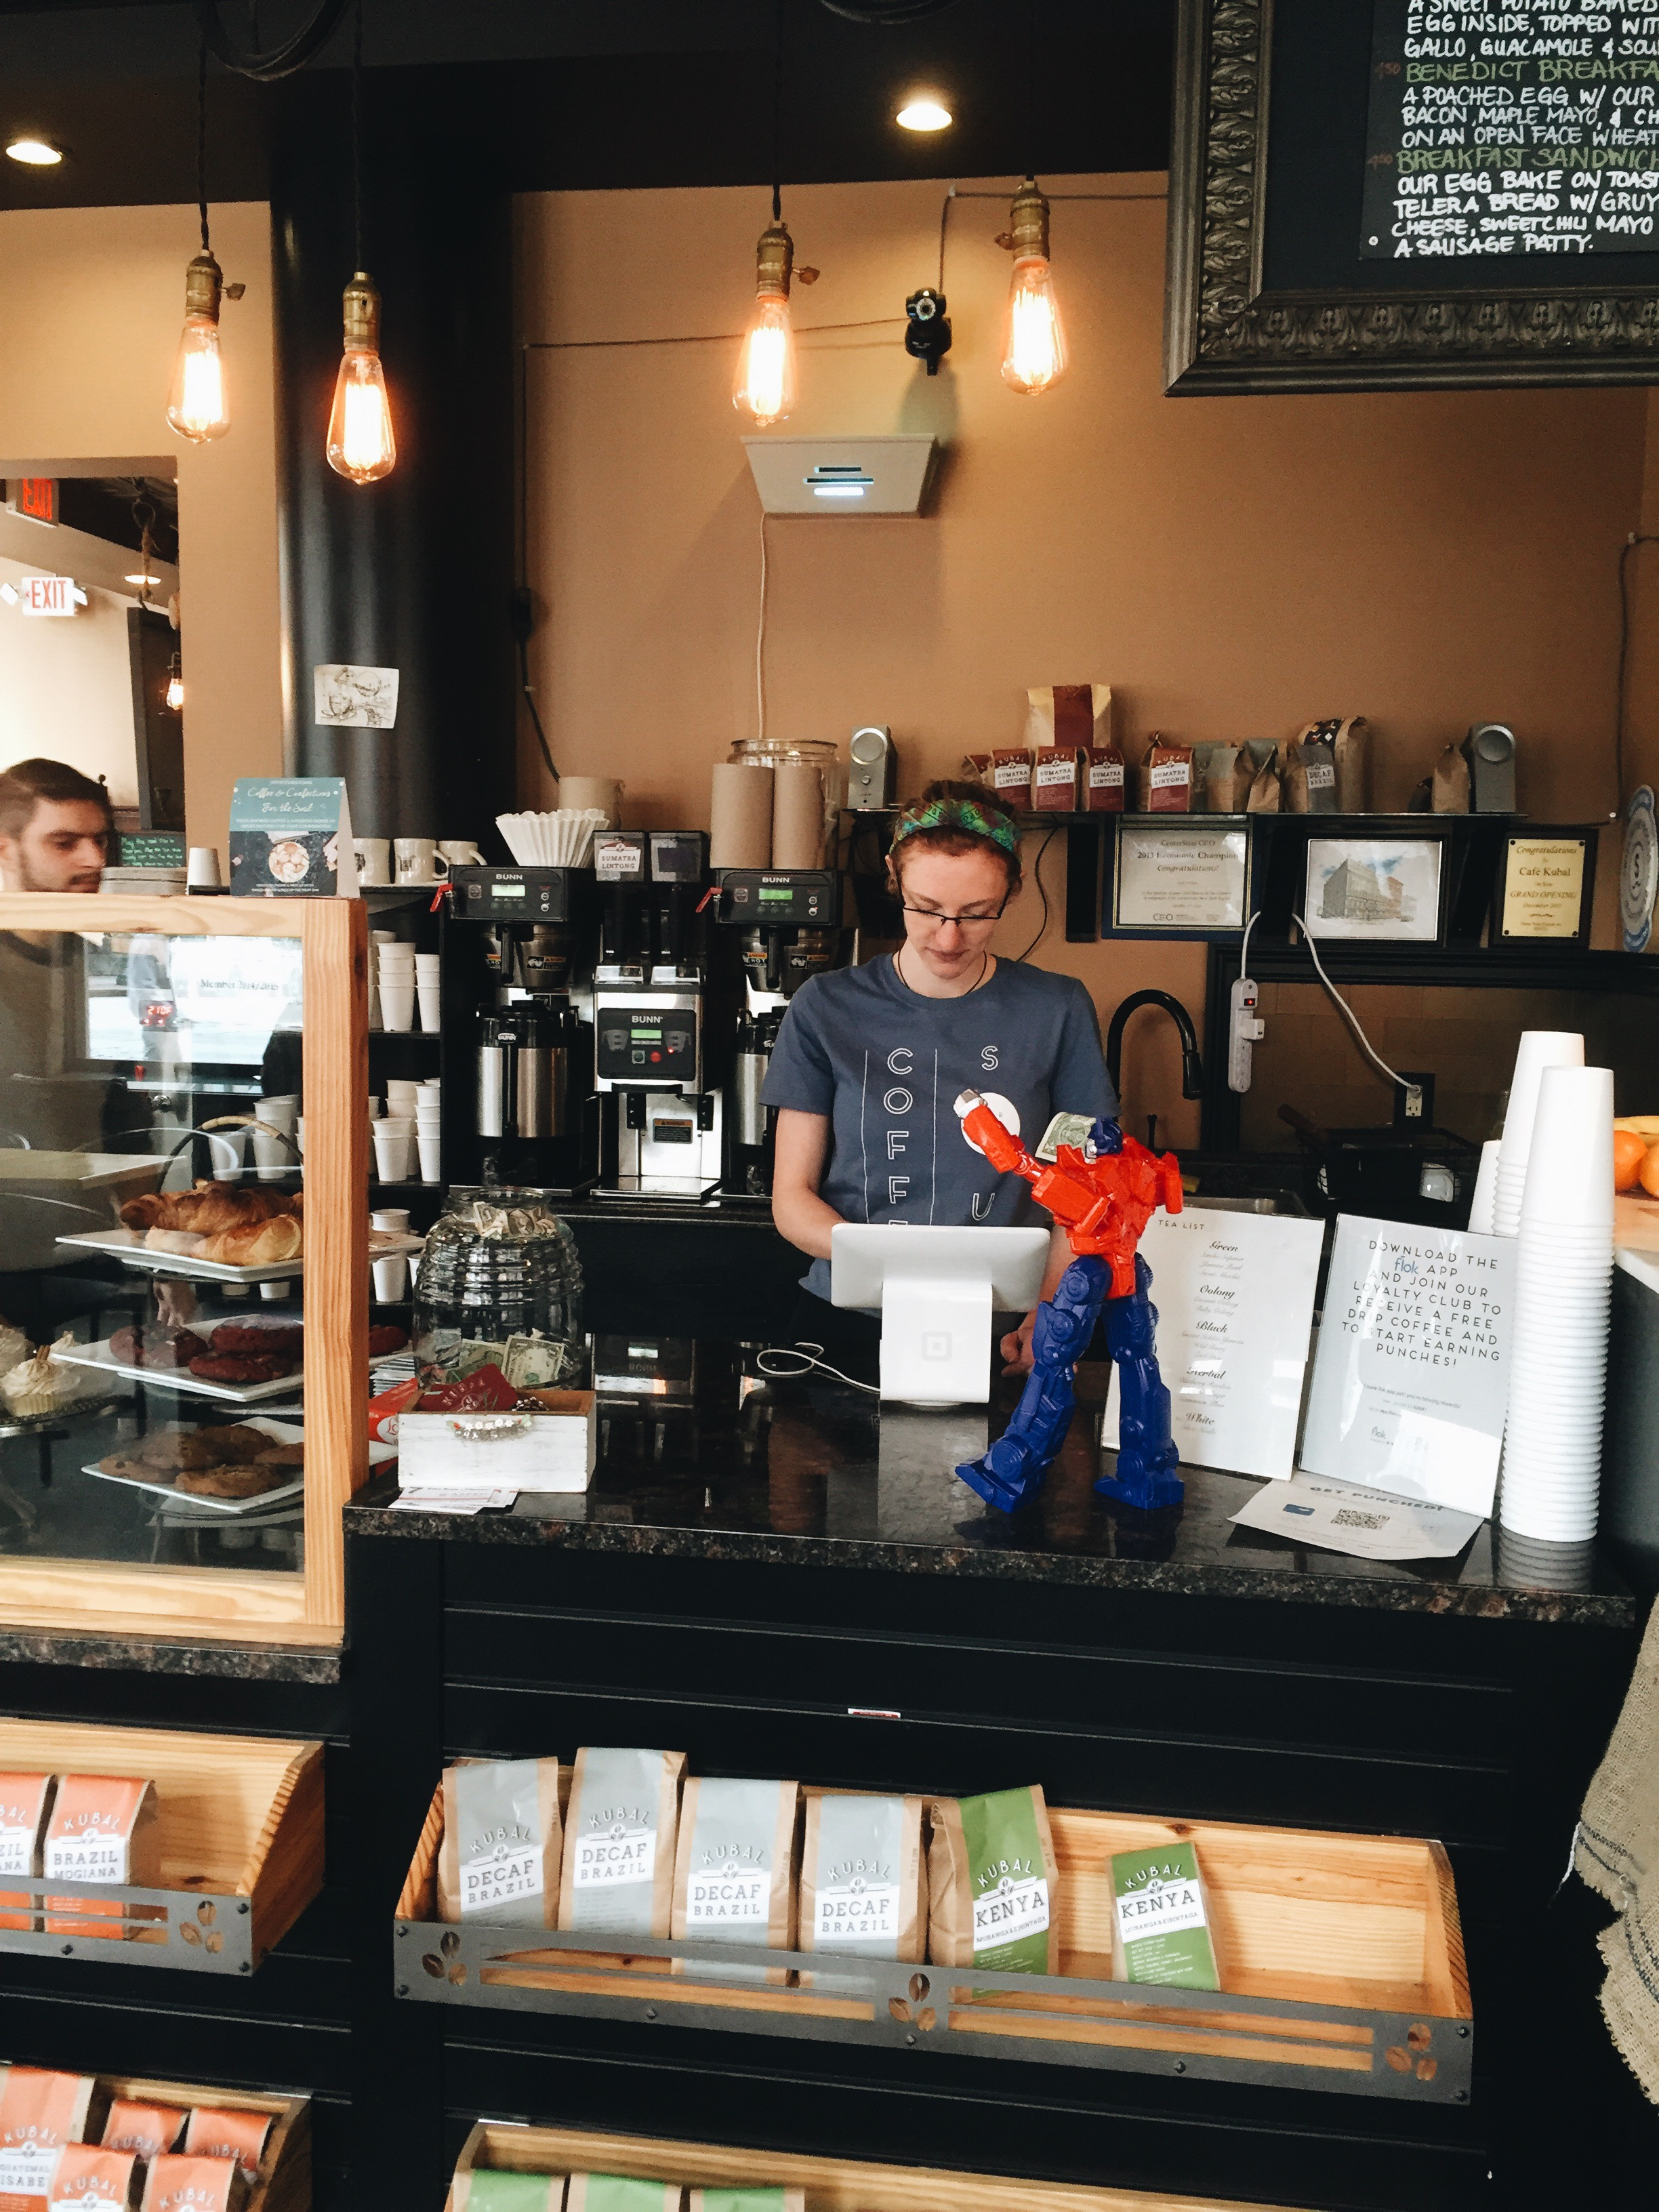 Rod loved grabbing coffee at the local coffee shops. He ran on caffeine.